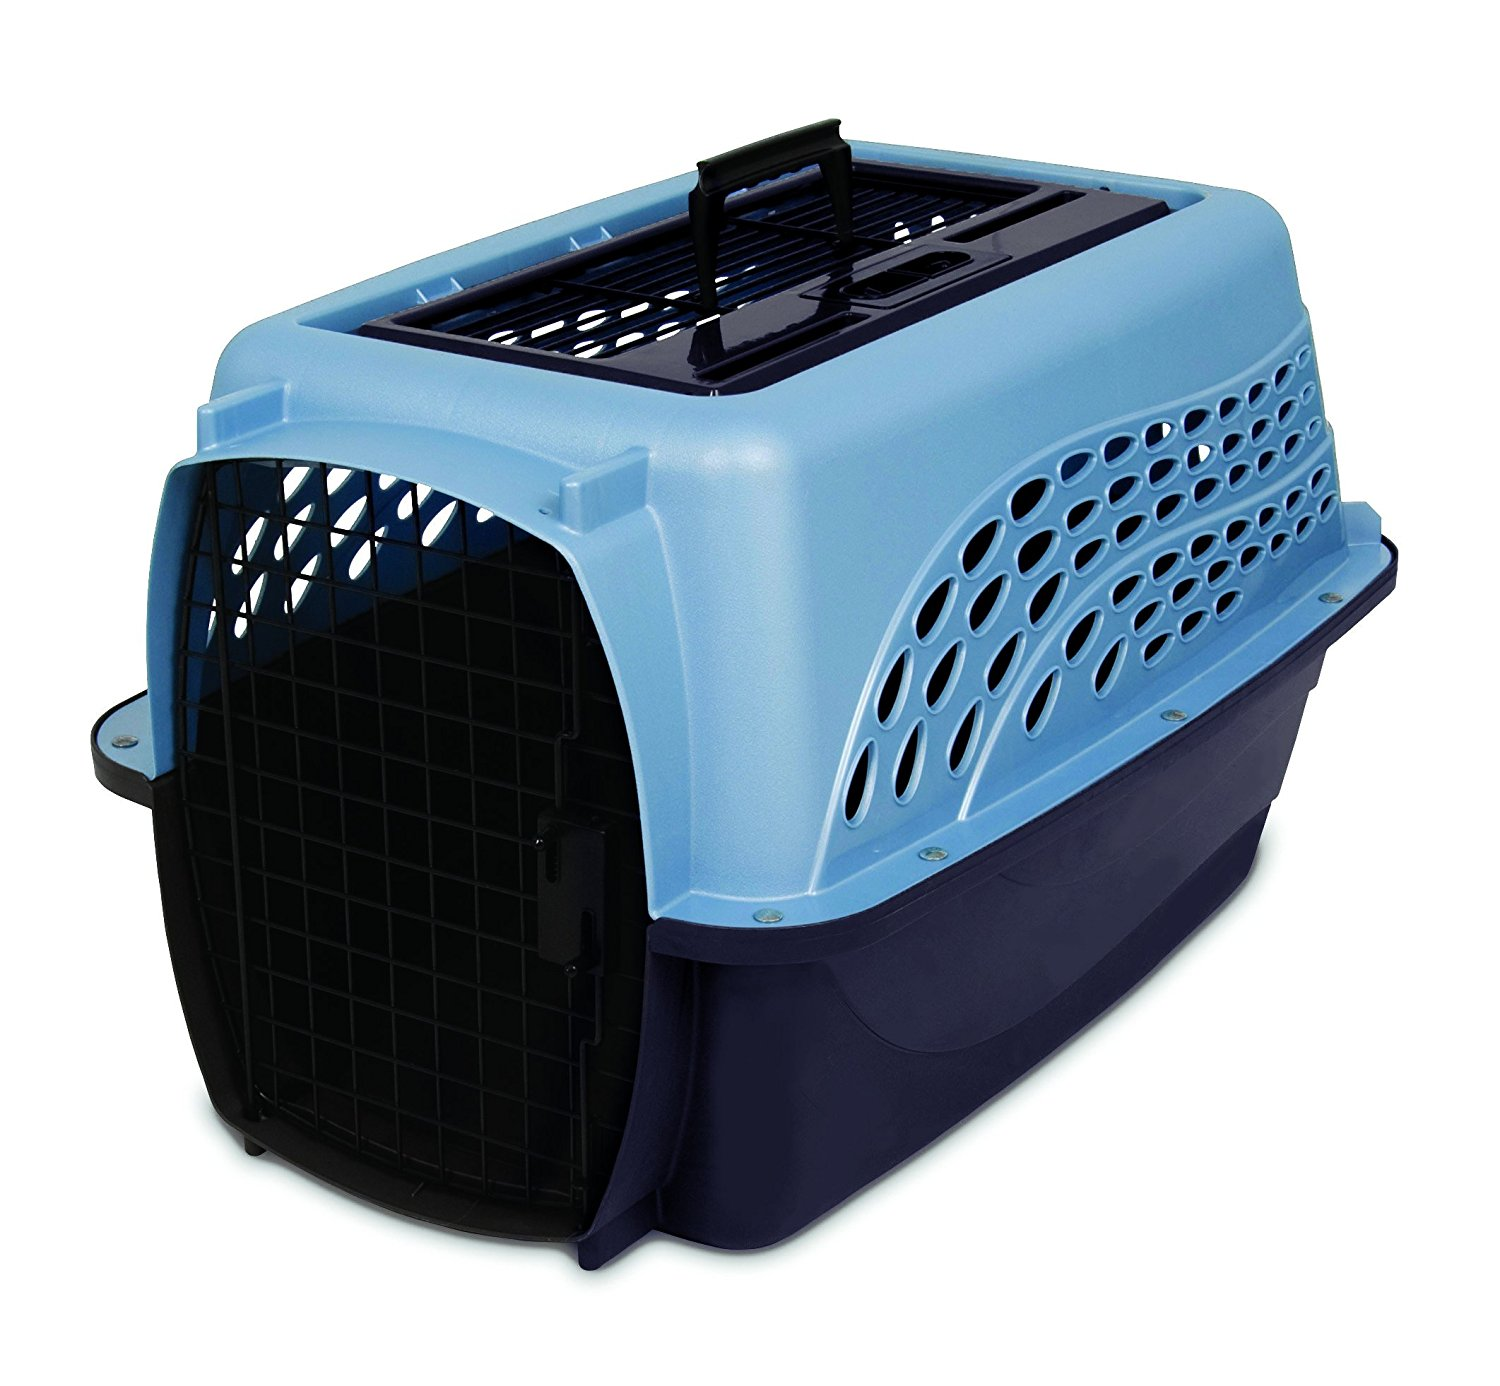 Amazon Two-Door Top Loading Kennel